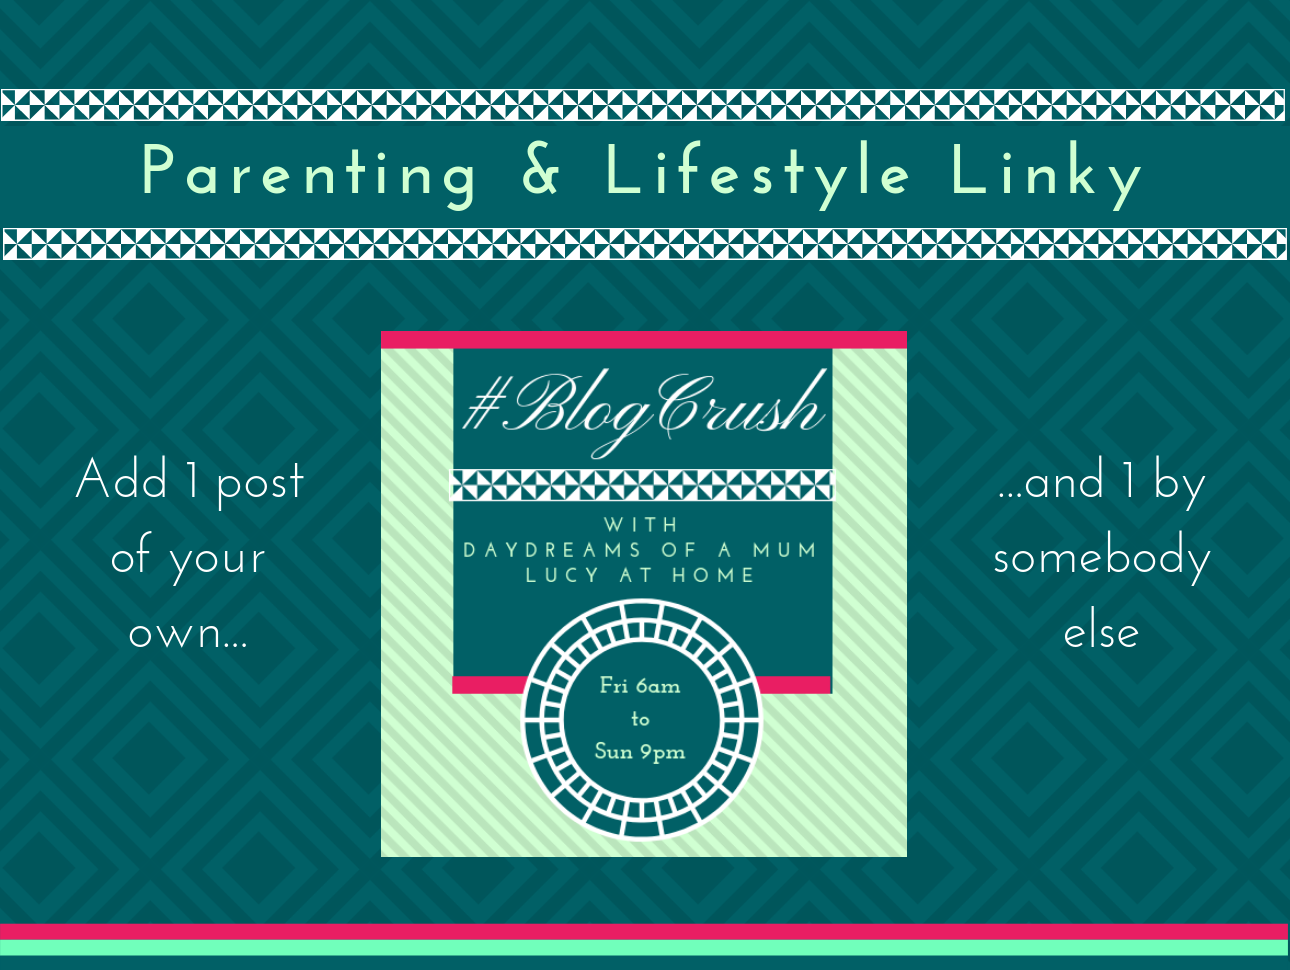 BlogCrush Linky Concept - BlogCrush Week 106